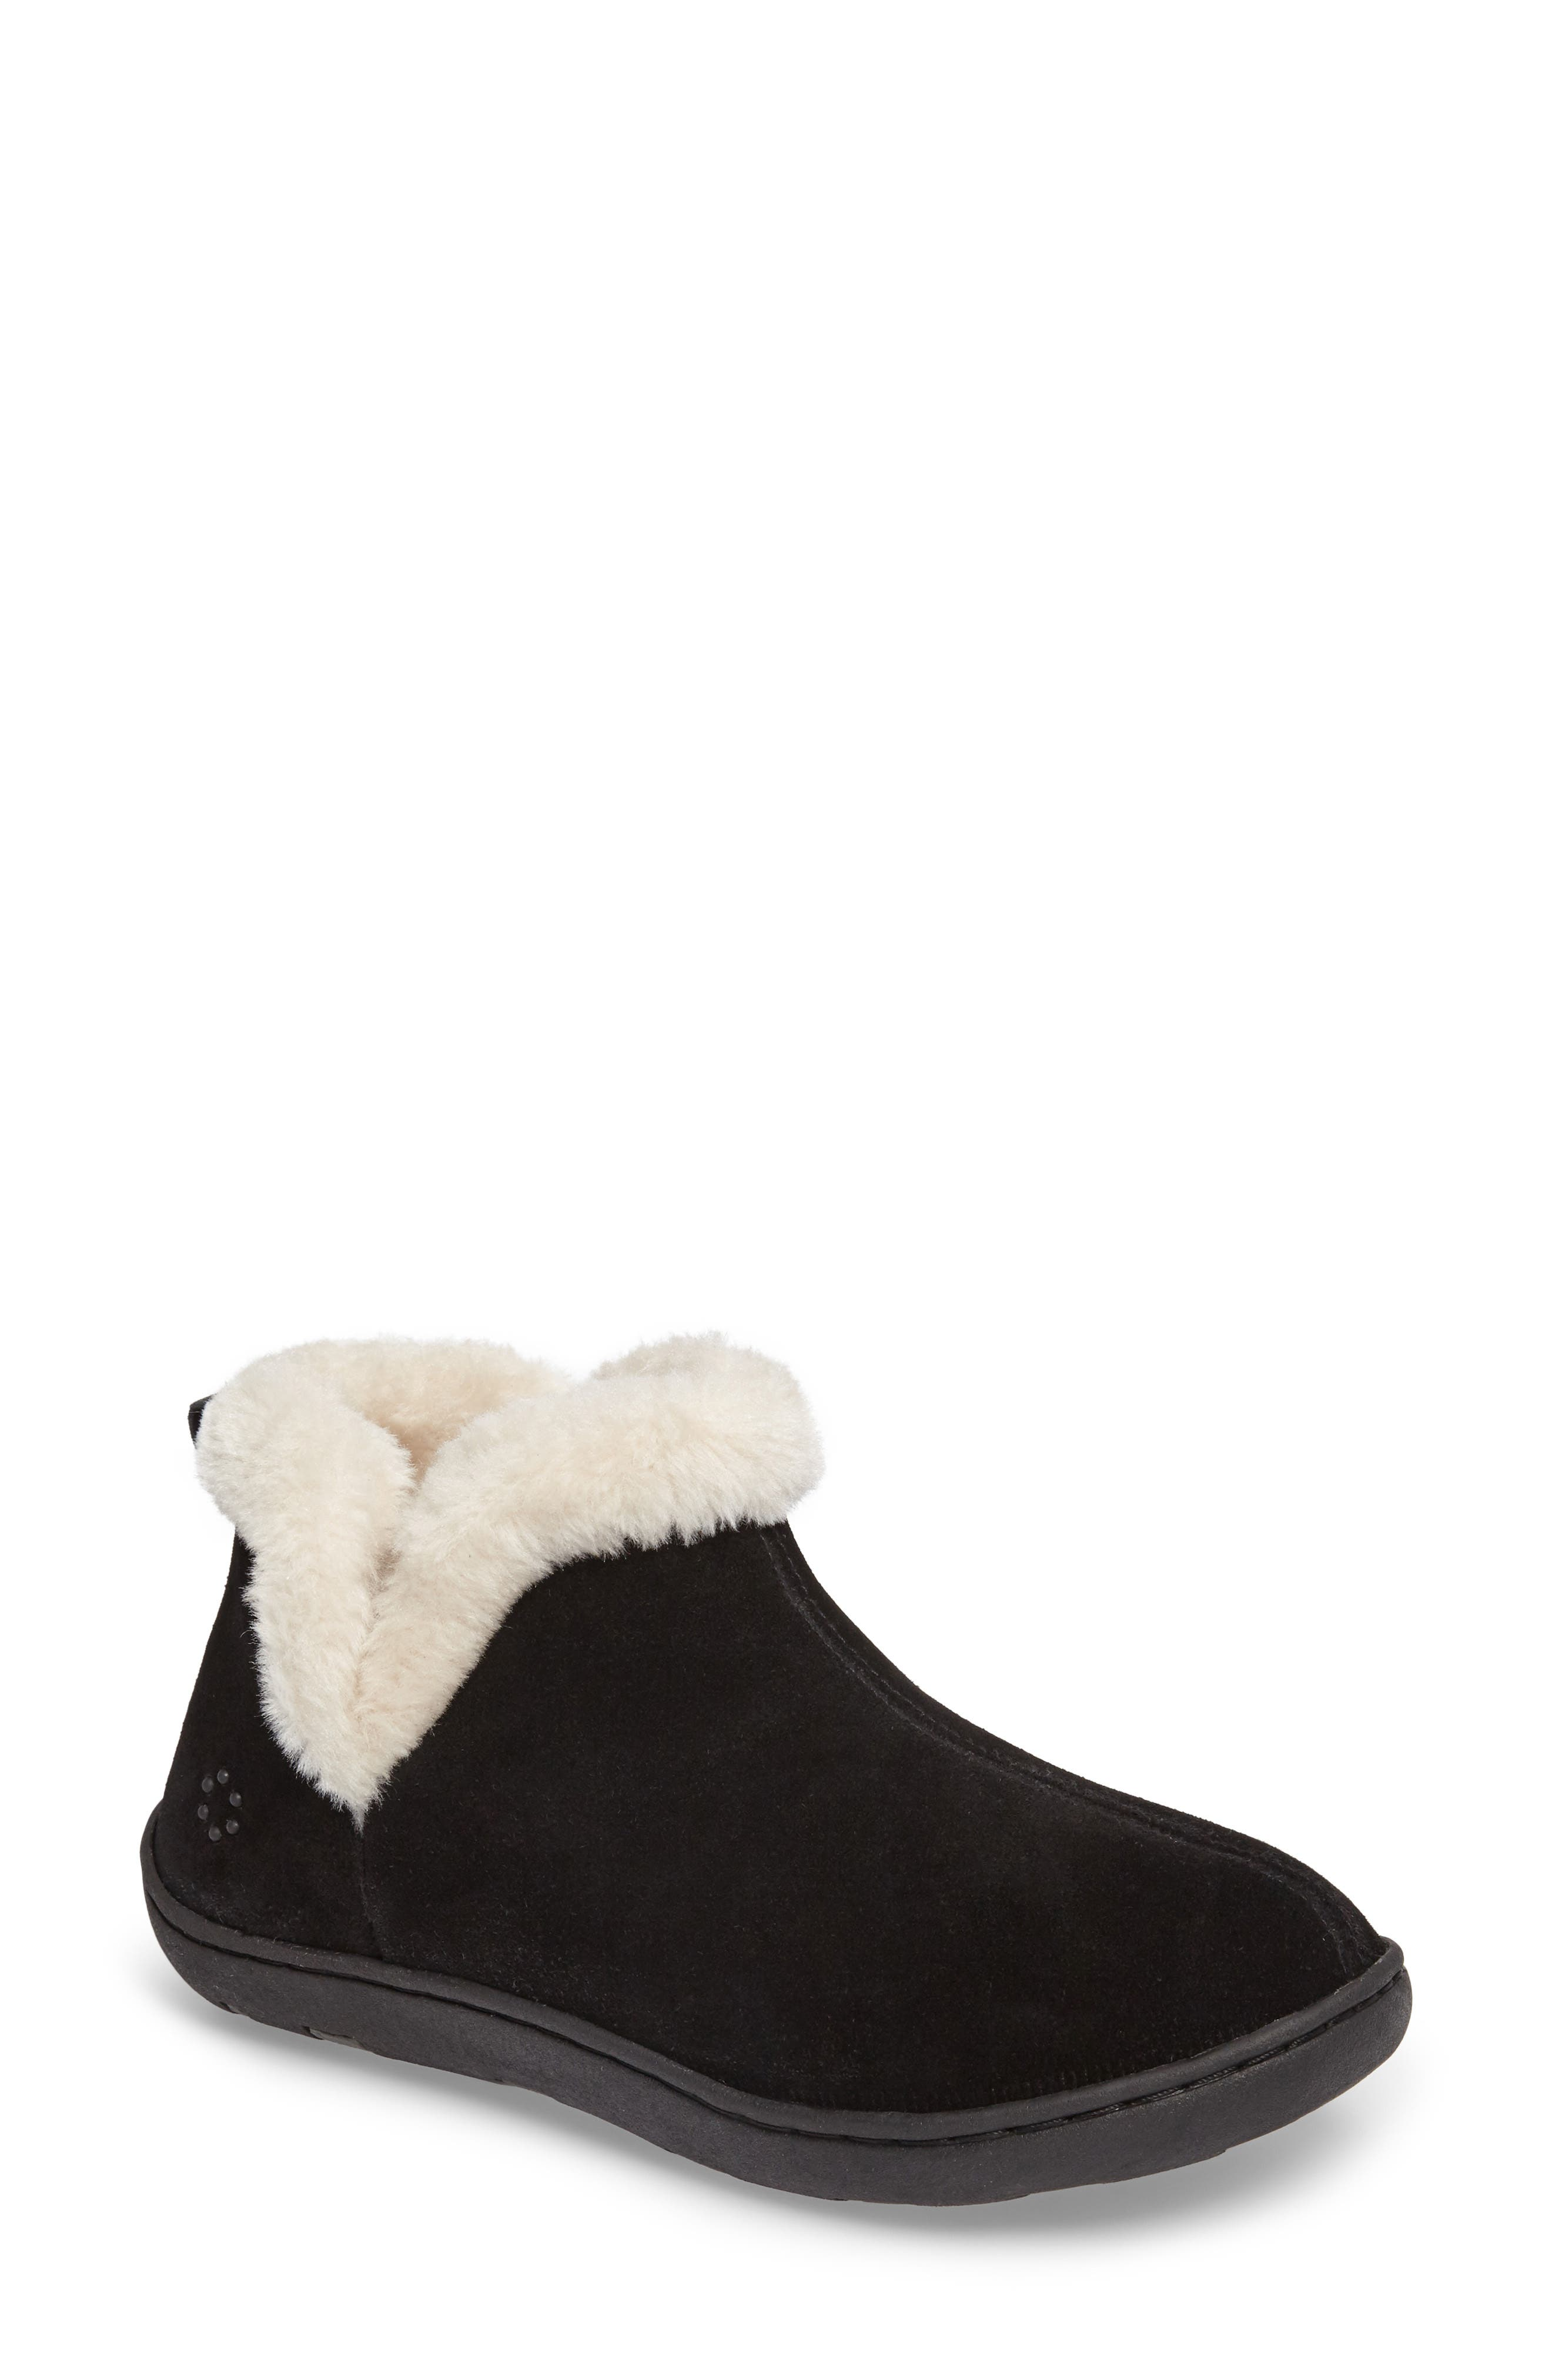 Vallery Bootie Slipper,                             Main thumbnail 1, color,                             BLACK SUEDE